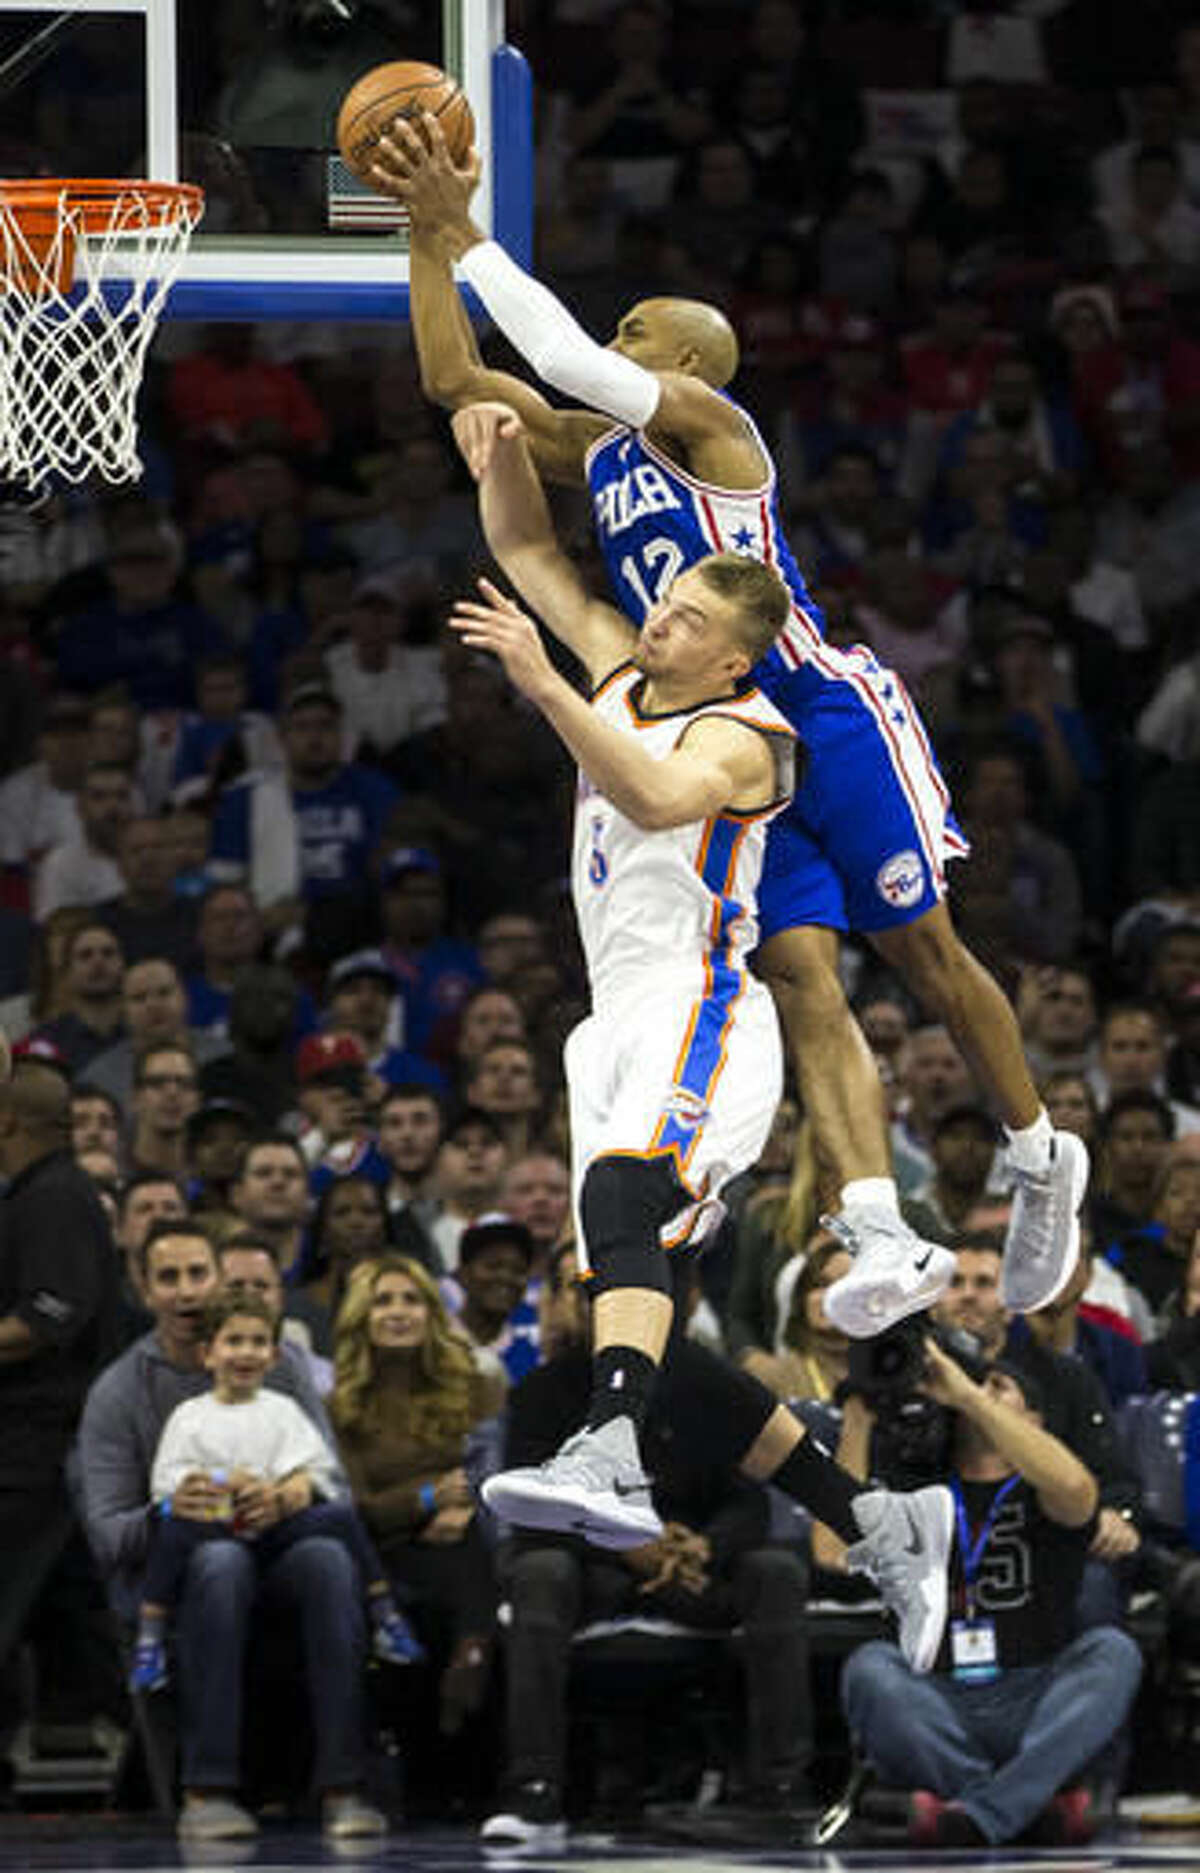 Philadelphia 76ers' Gerald Henderson, right, goes up for the shot over Oklahoma City Thunder's Domantas Sabonis, left, during the first half of an NBA basketball game, Wednesday, Oct. 26, 2016, in Philadelphia. (AP Photo/Chris Szagola)